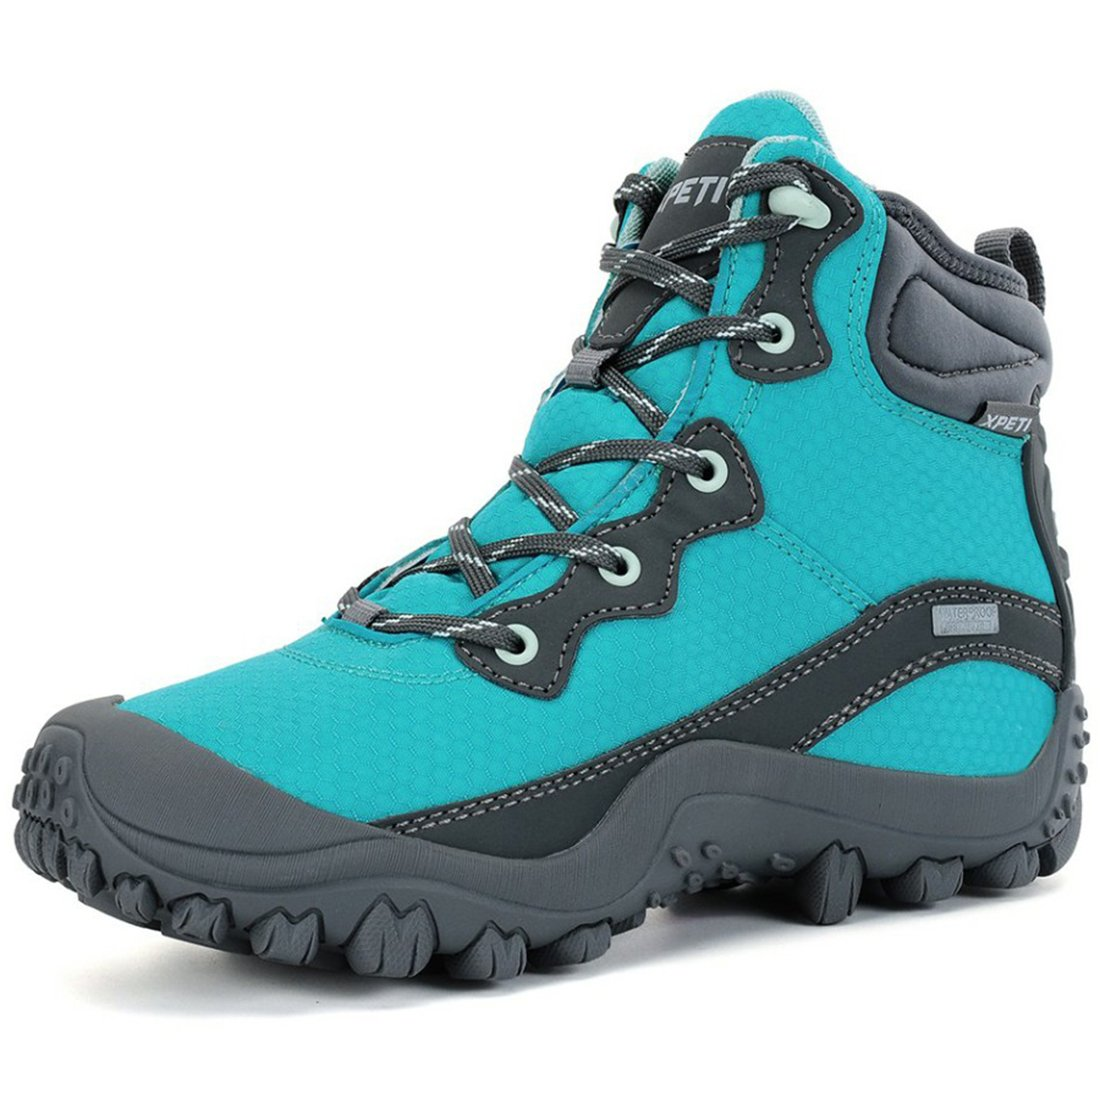 XPETI Women's Dimo Mid Waterproof Hiking Outdoor Boot Blue 10 by XPETI